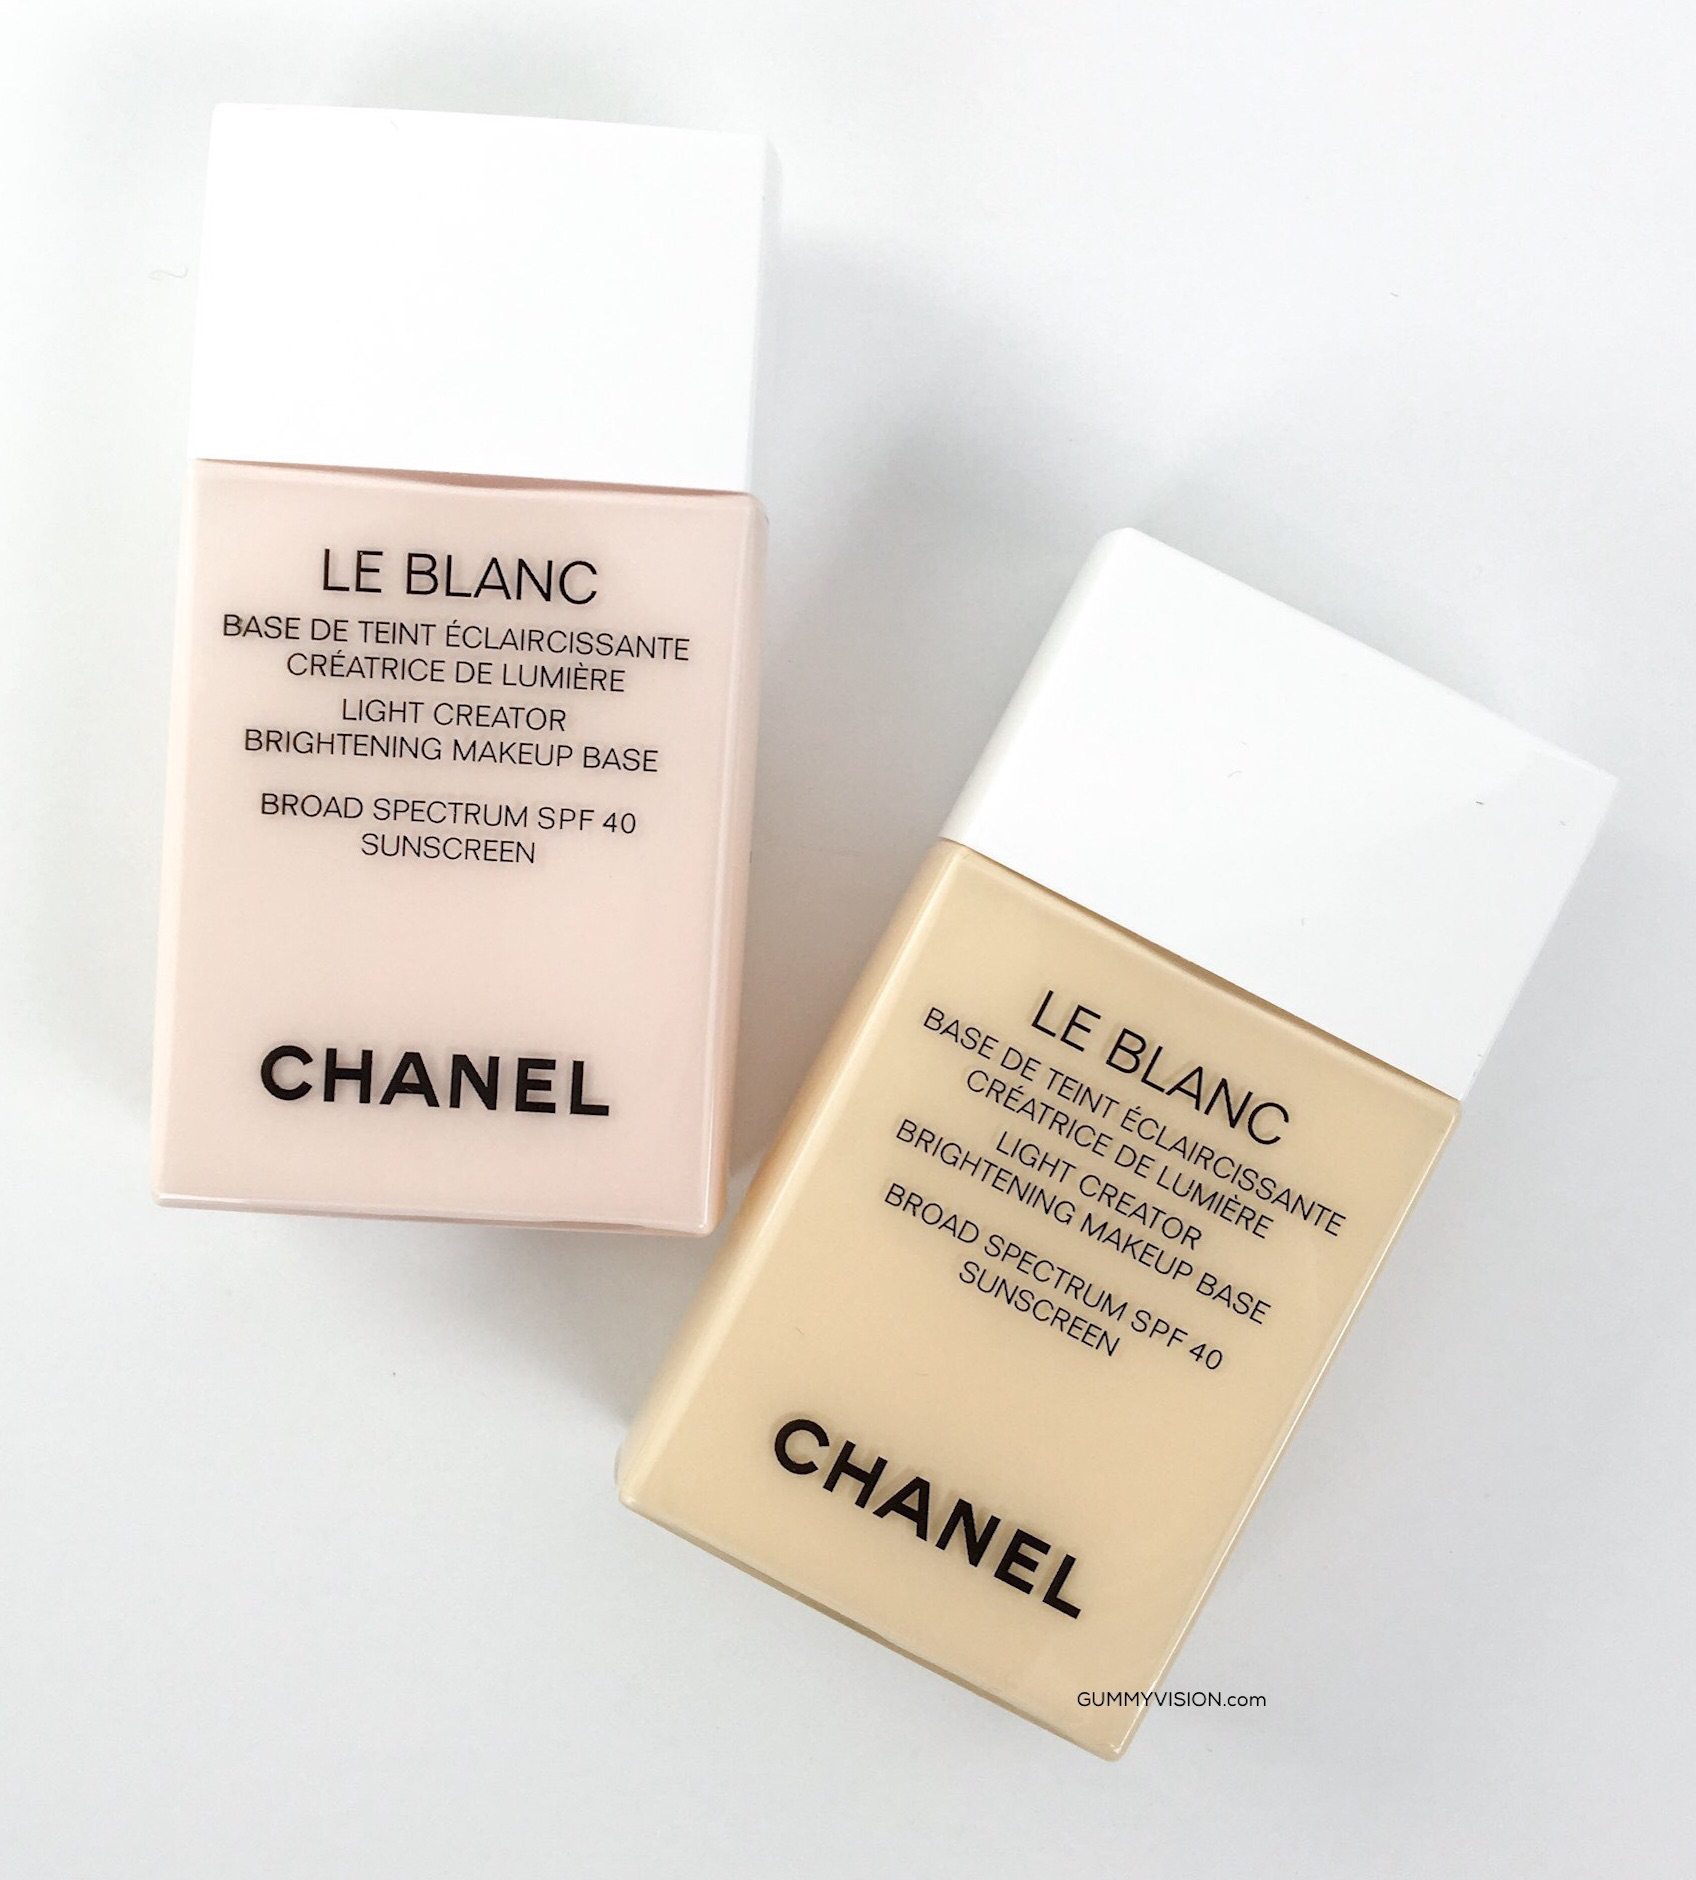 Chanel Le Blanc Light Creator Brightening Makeup Base in Rosee and Mimosa